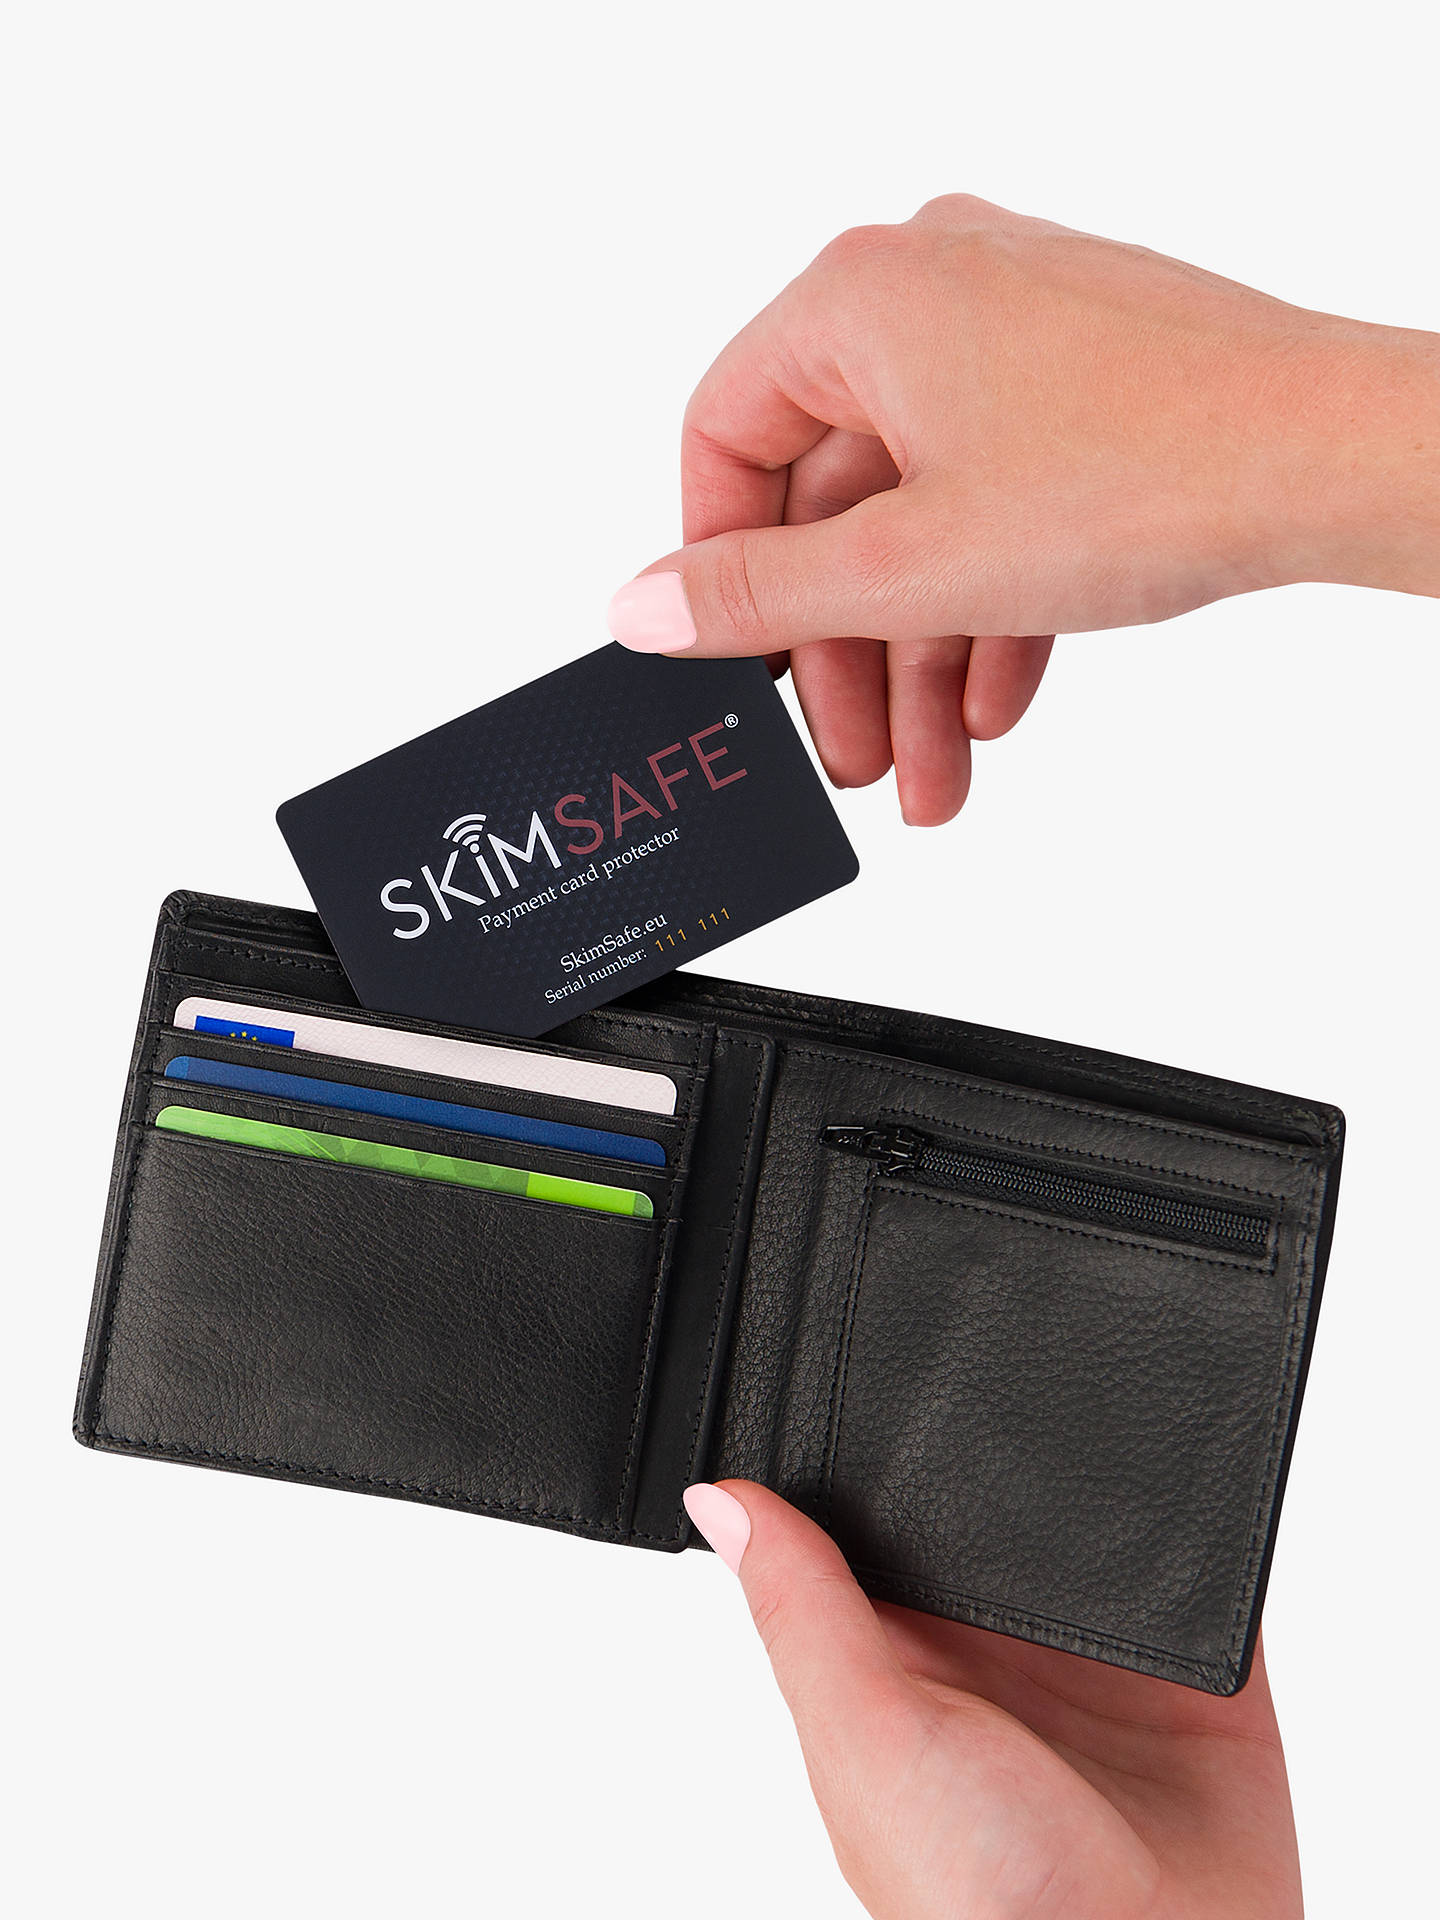 Buy SkimSafe Debit & Credit Card Protector Online at johnlewis.com